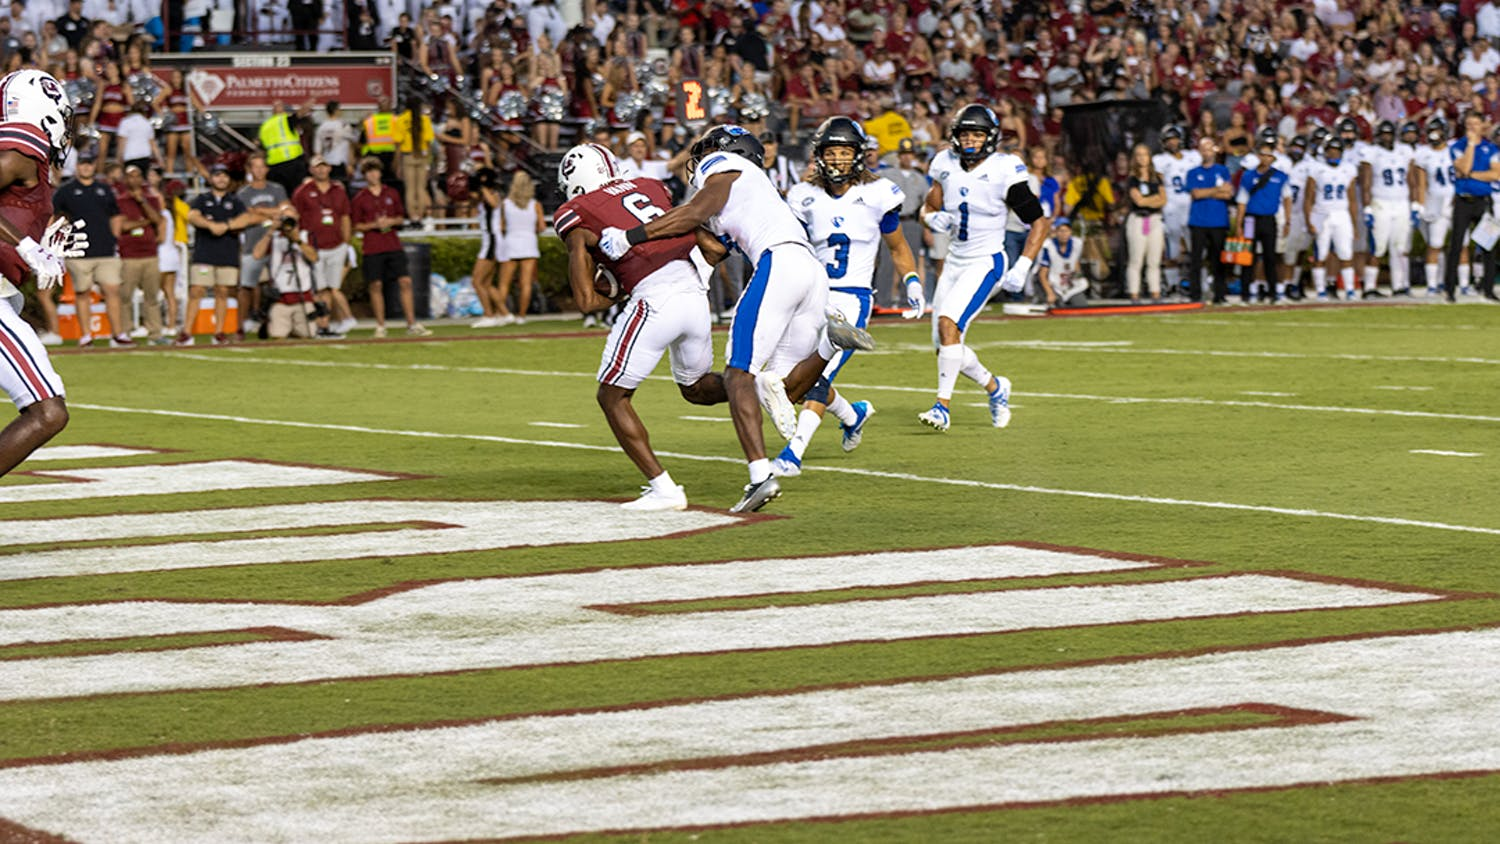 Senior wide receiver Josh Vann steps into the end zone with a 12-yard pass from graduate student quarterback Zeb Noland. This touchdown brought the Gamecocks to 22 points at the top of the second quarter.